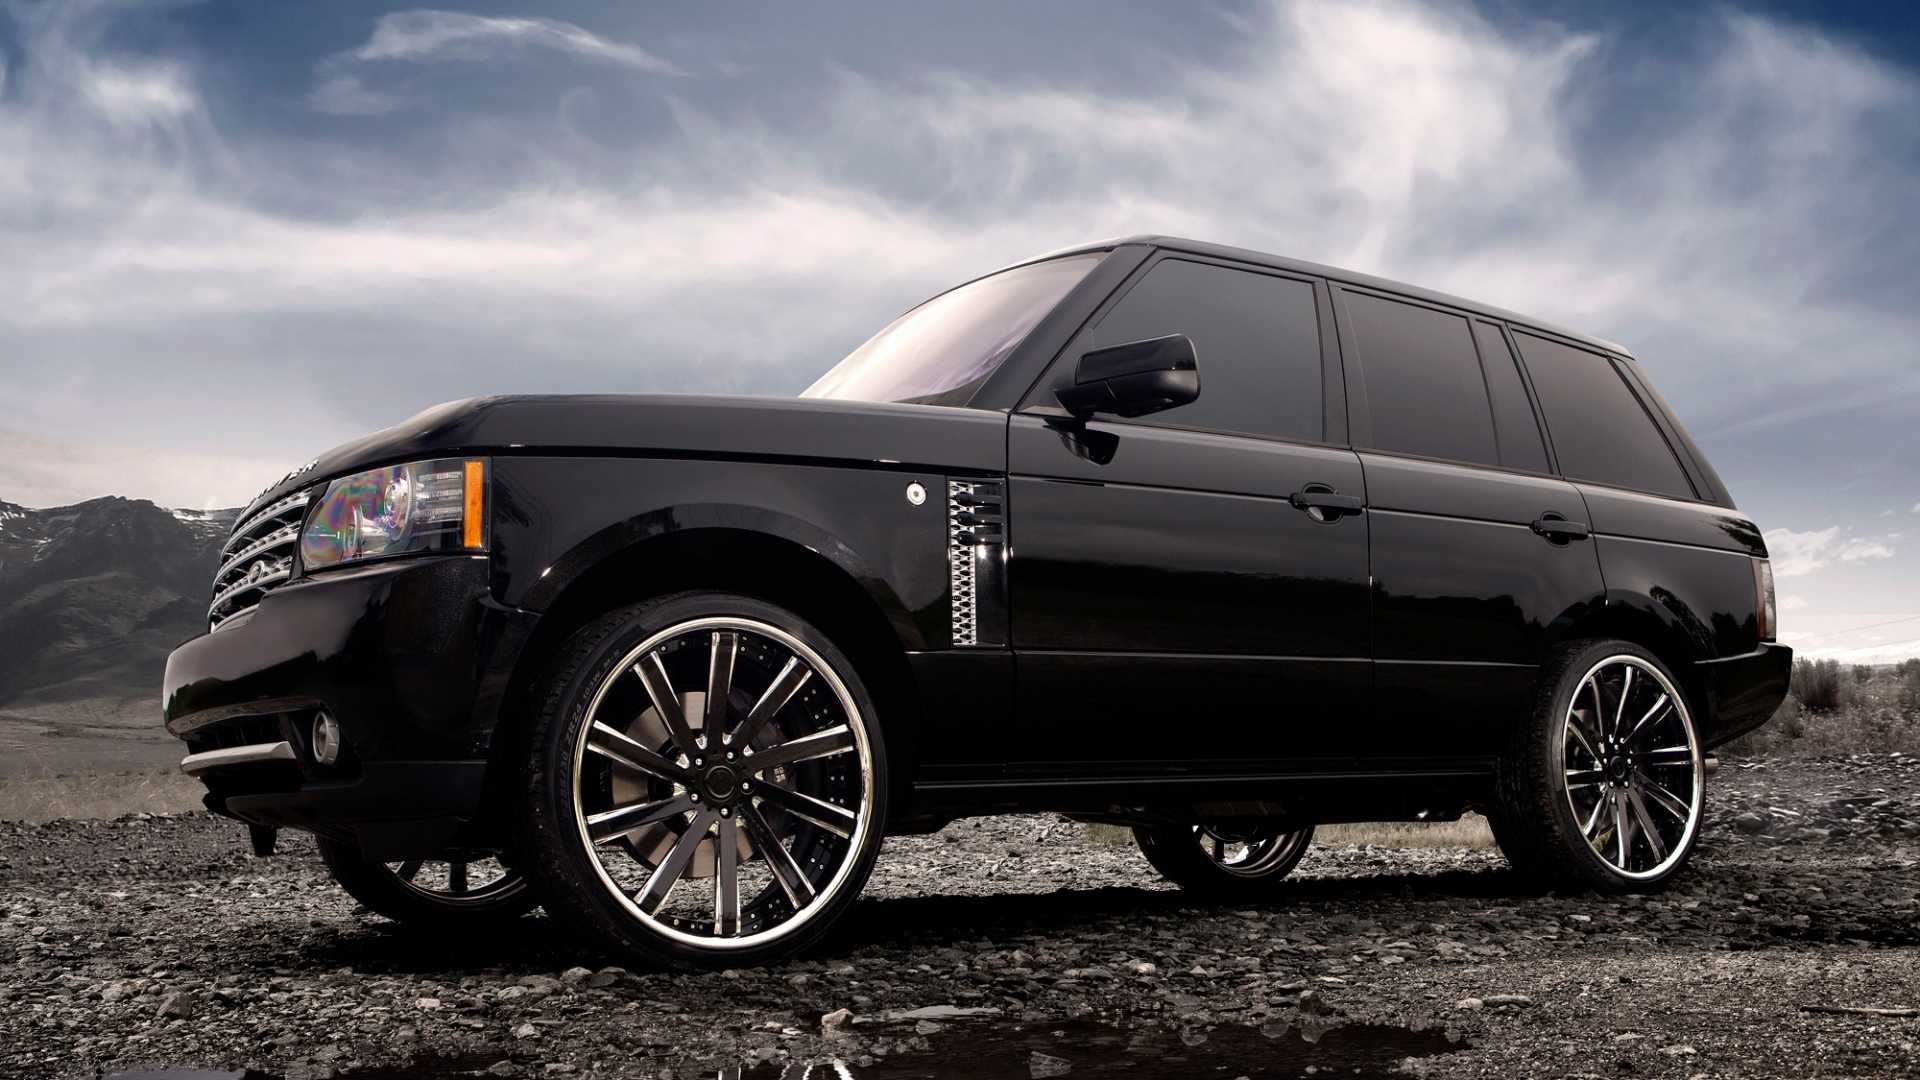 Download Wallpaper 1920x1080 Range Rover Land Rover Auto Wheels